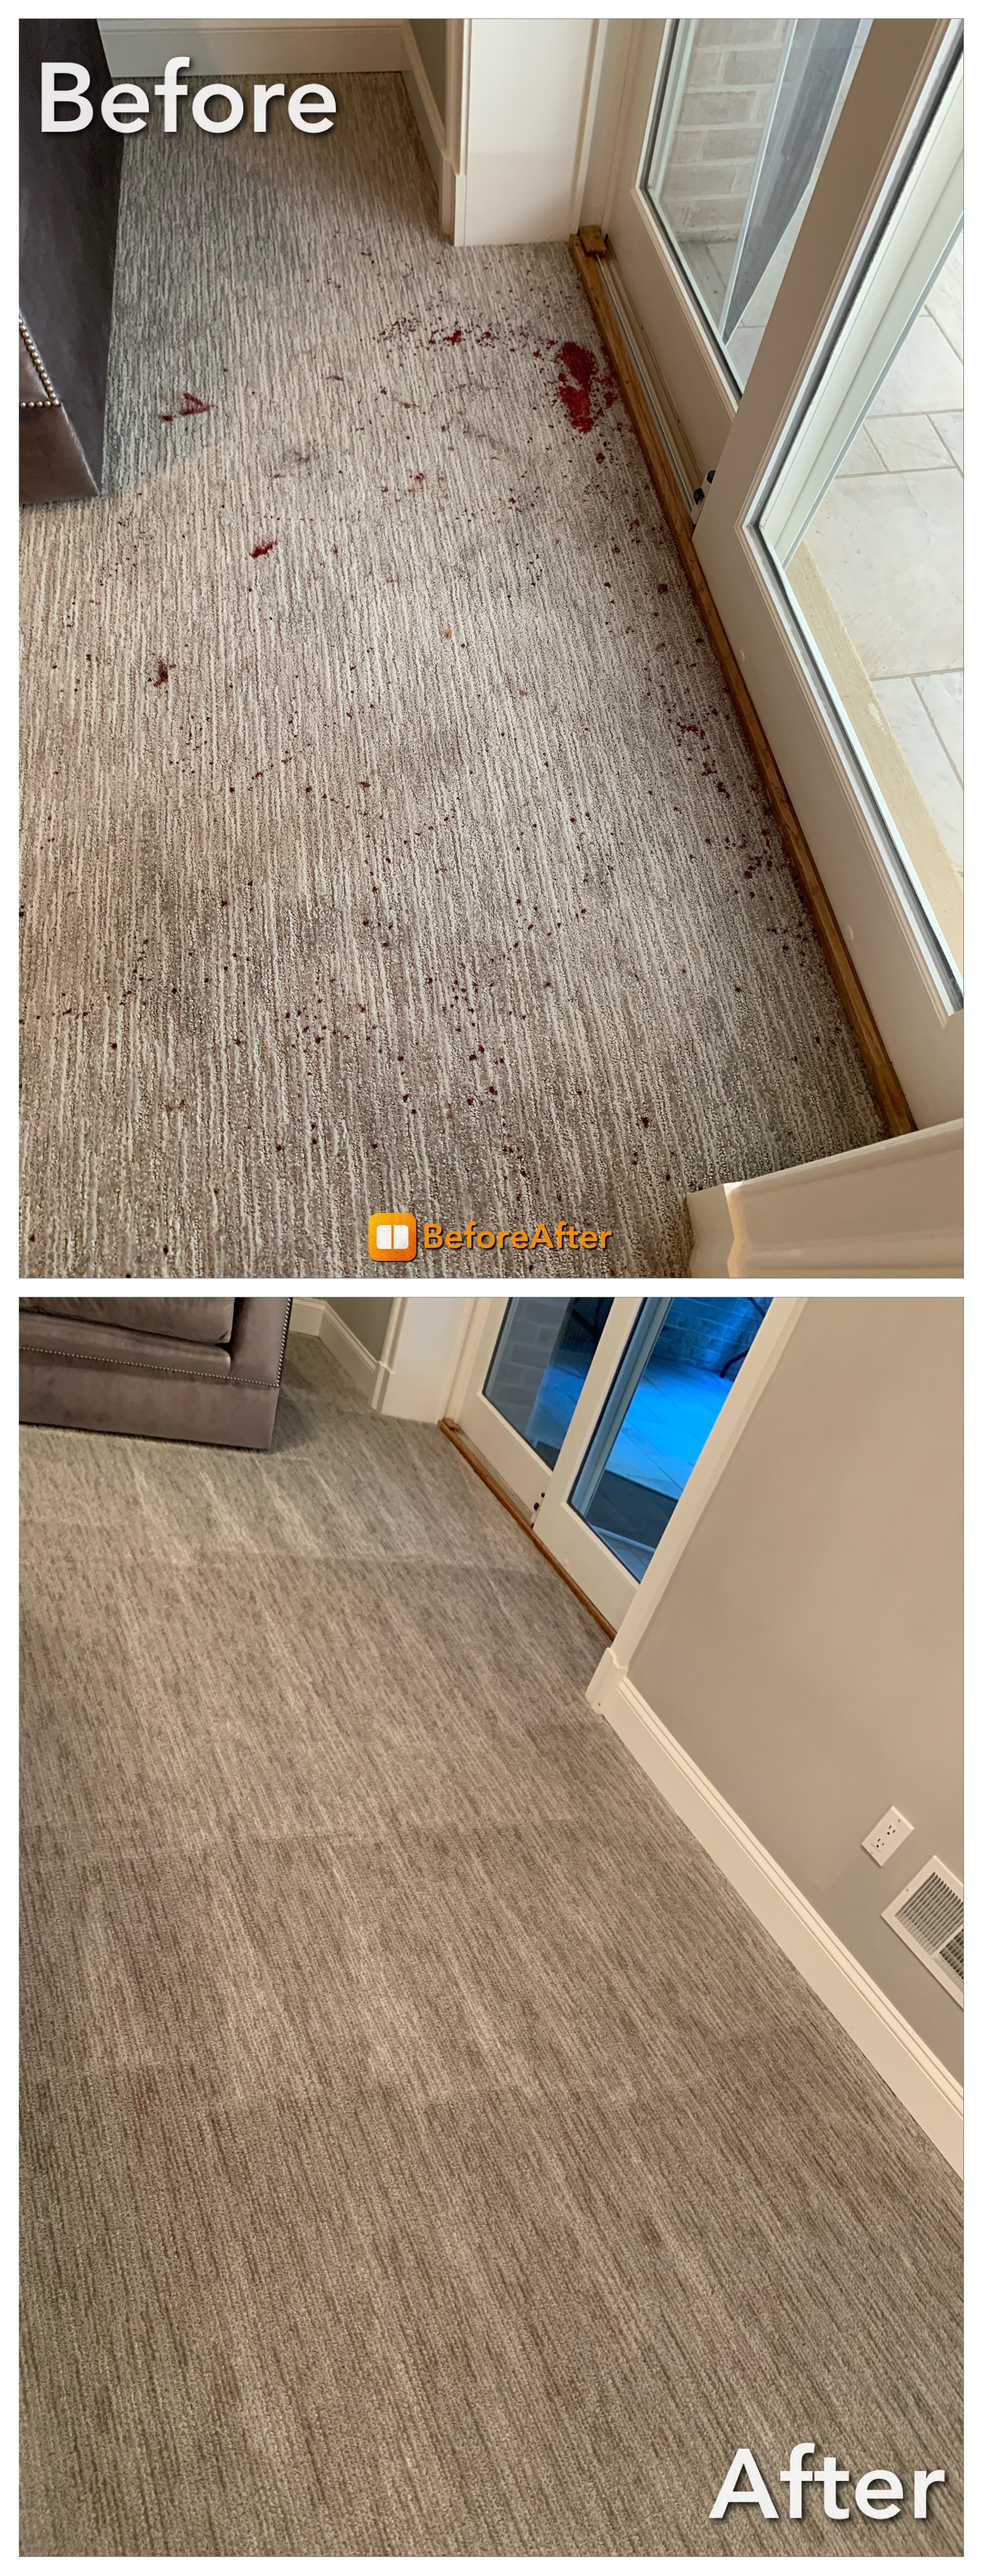 Carpet Cleaning - Blood Stains